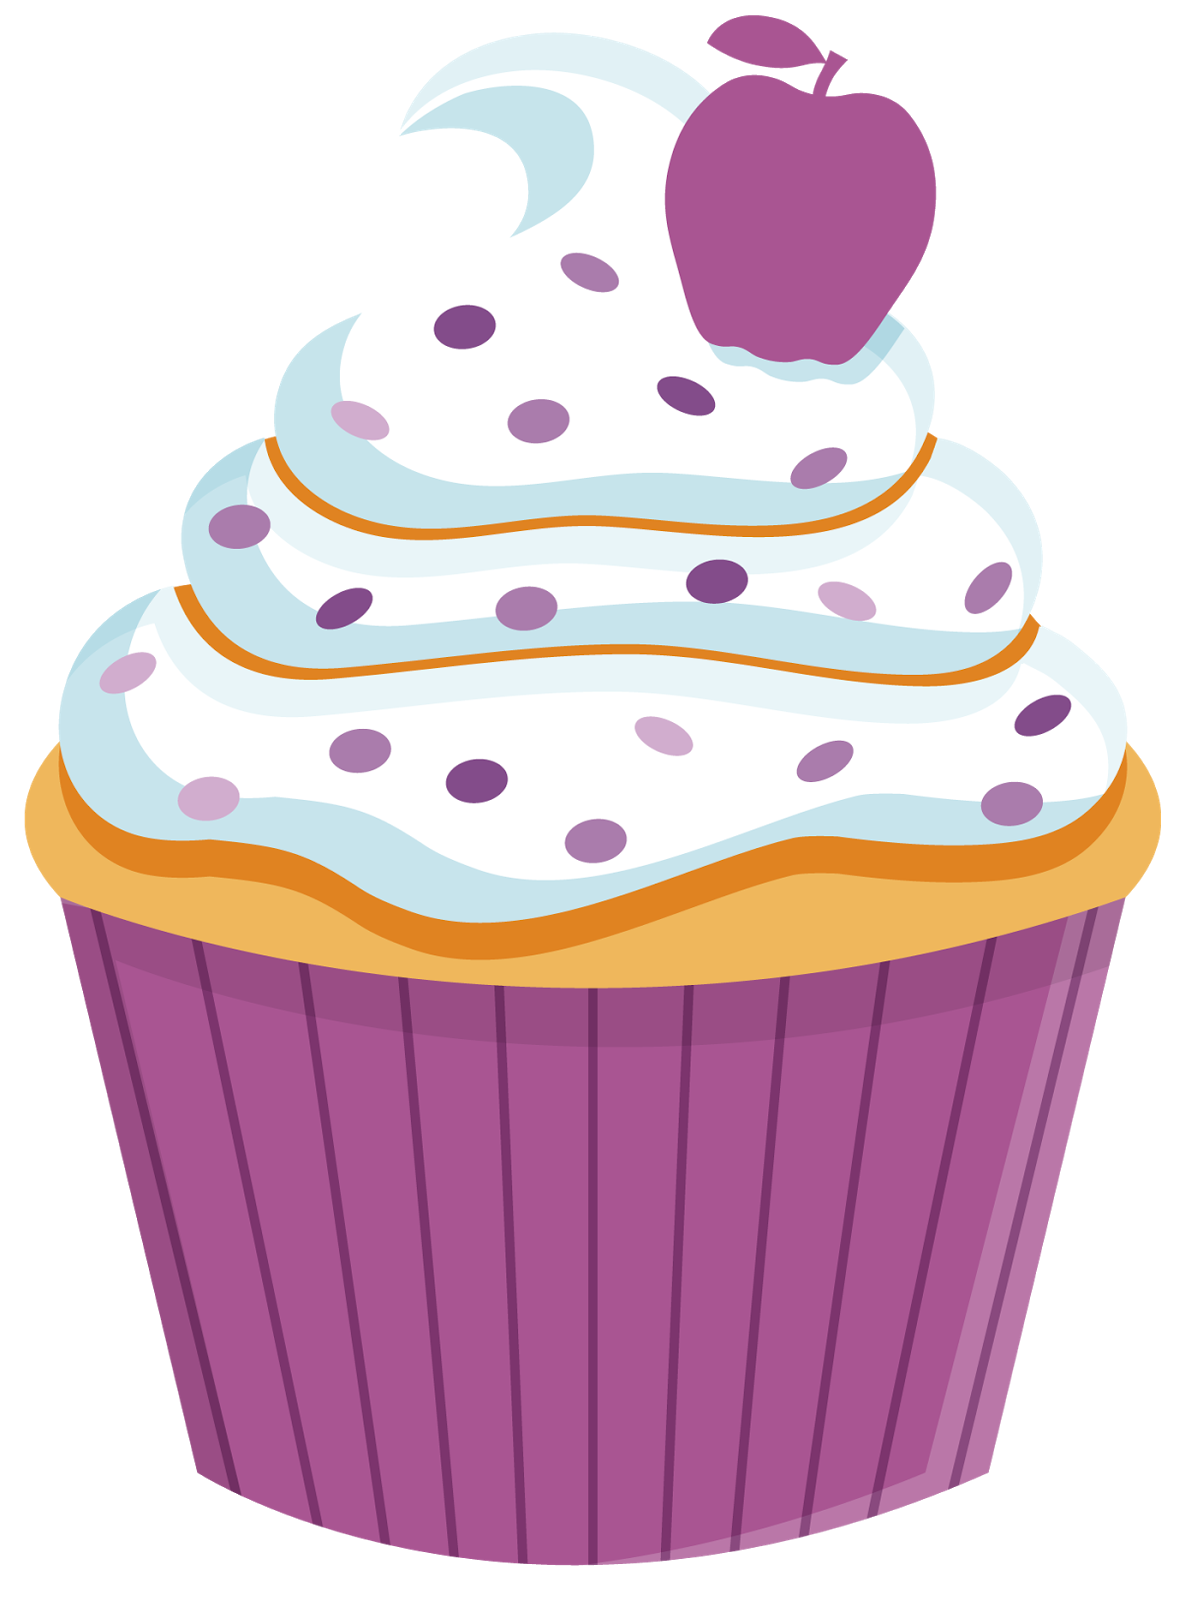 Drawn sweets colorful cupcake Pinterest ✿⁀Cupcakes‿✿⁀ Food for Cupcake